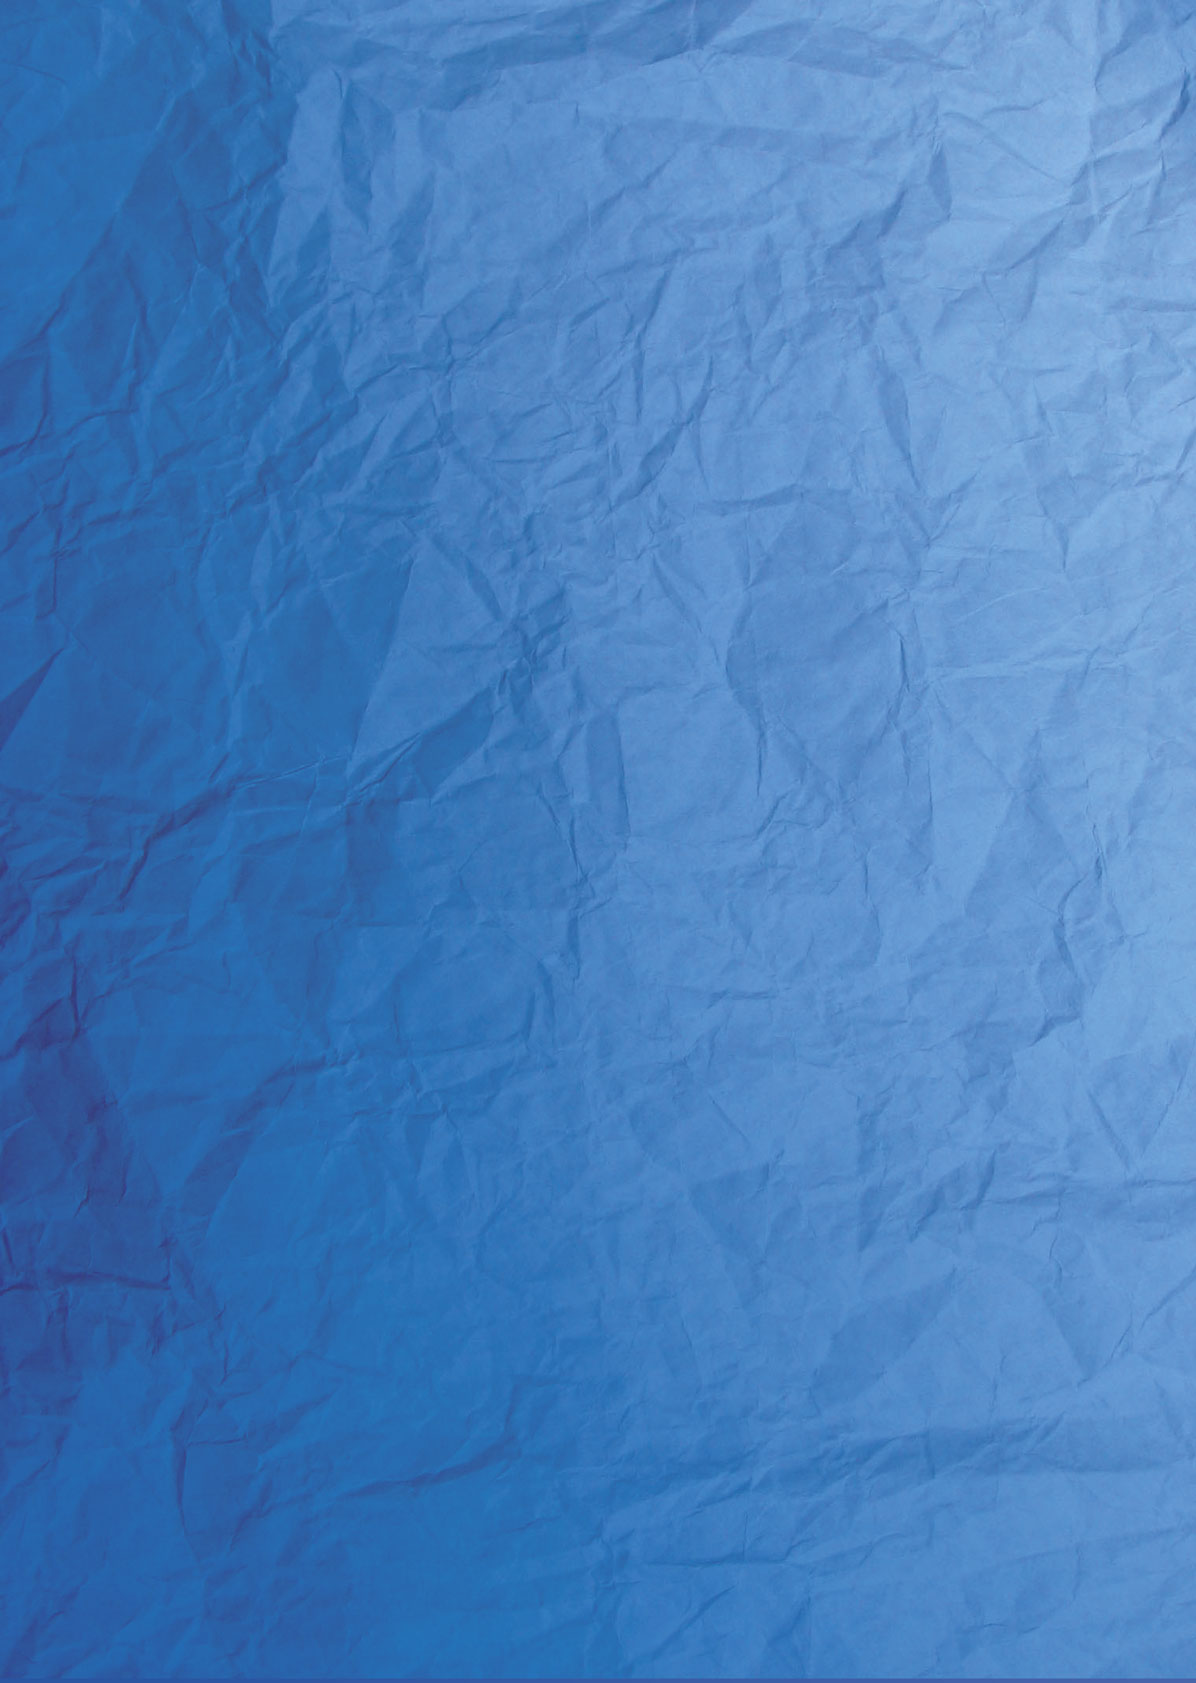 Colorworks Lanzarote Blue paper background